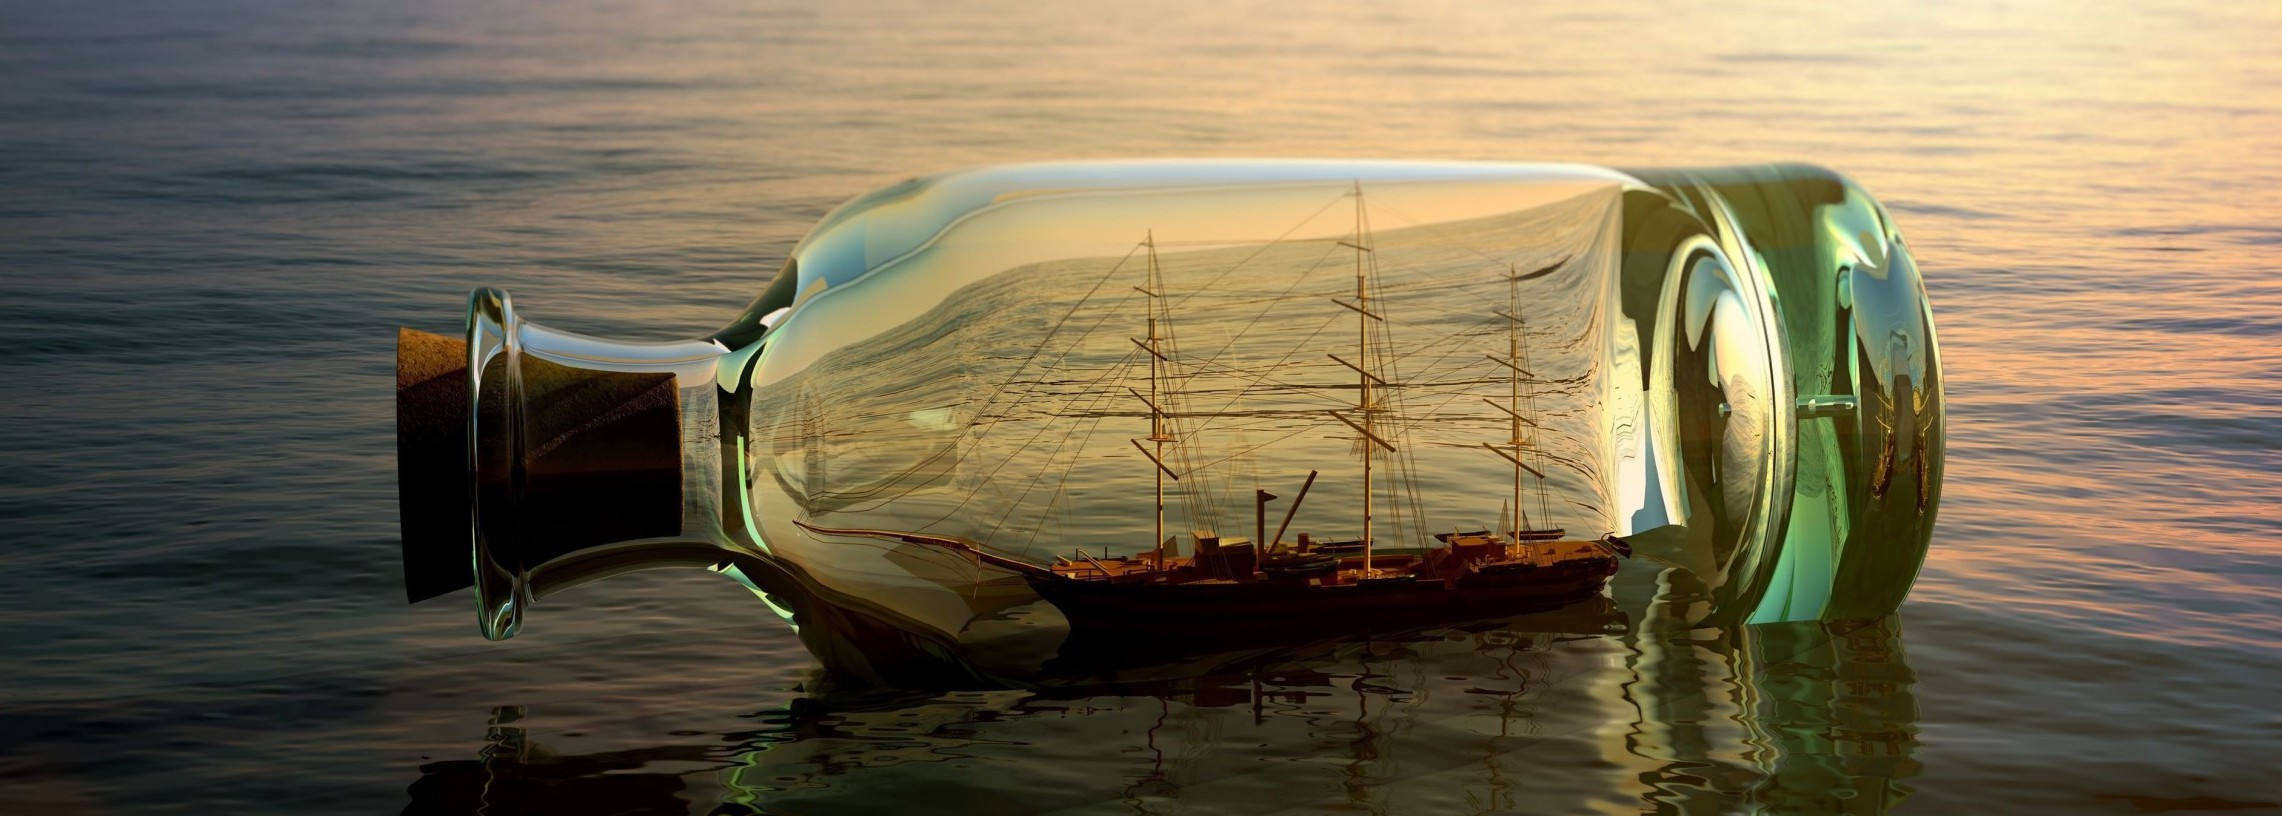 ship_vessel_bottle_mood_3500x1600-e1450381744726